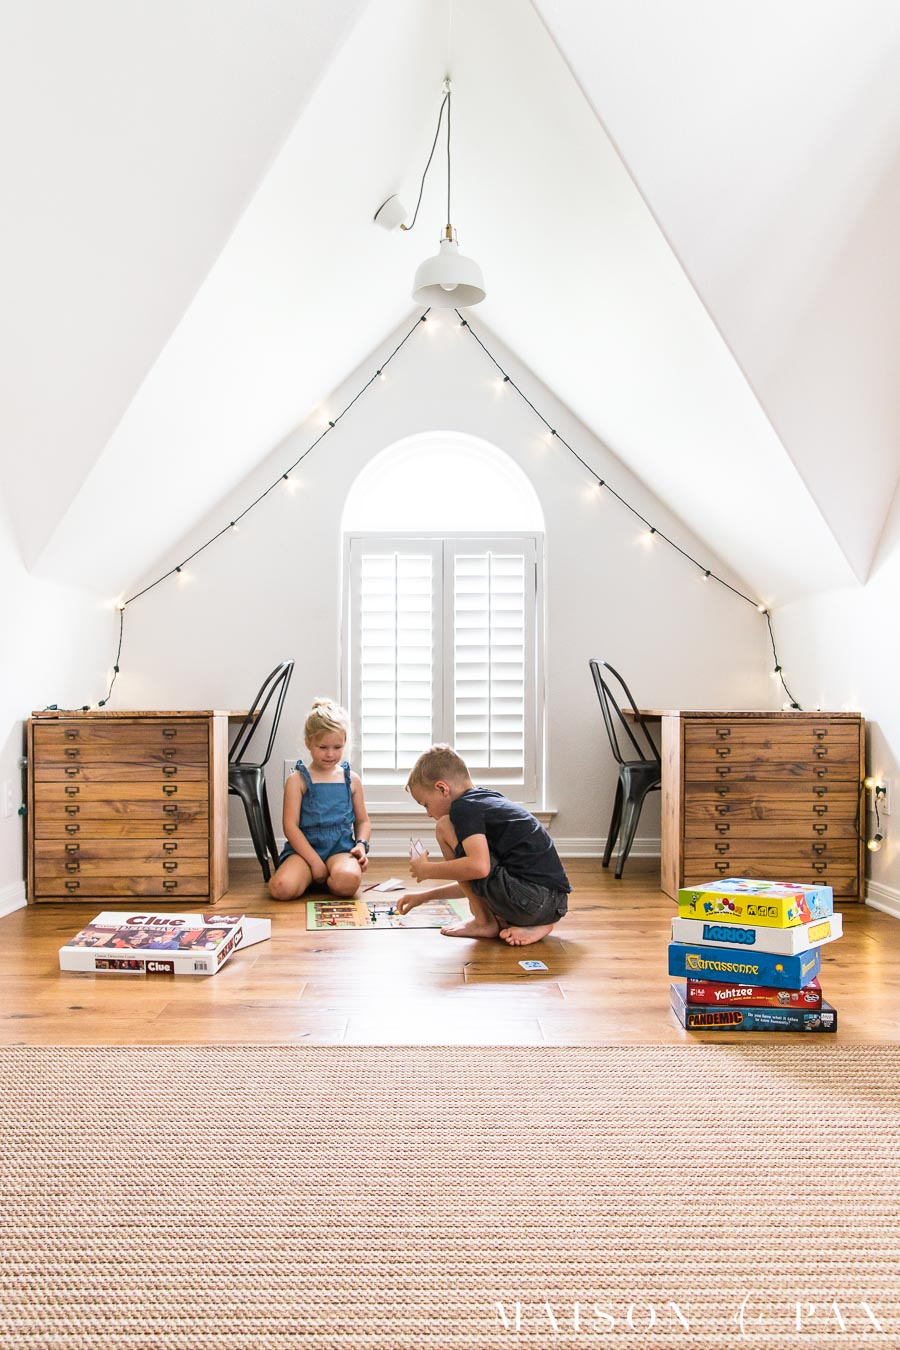 boy and girl playing board game on floor of playroom | maisondepax.com